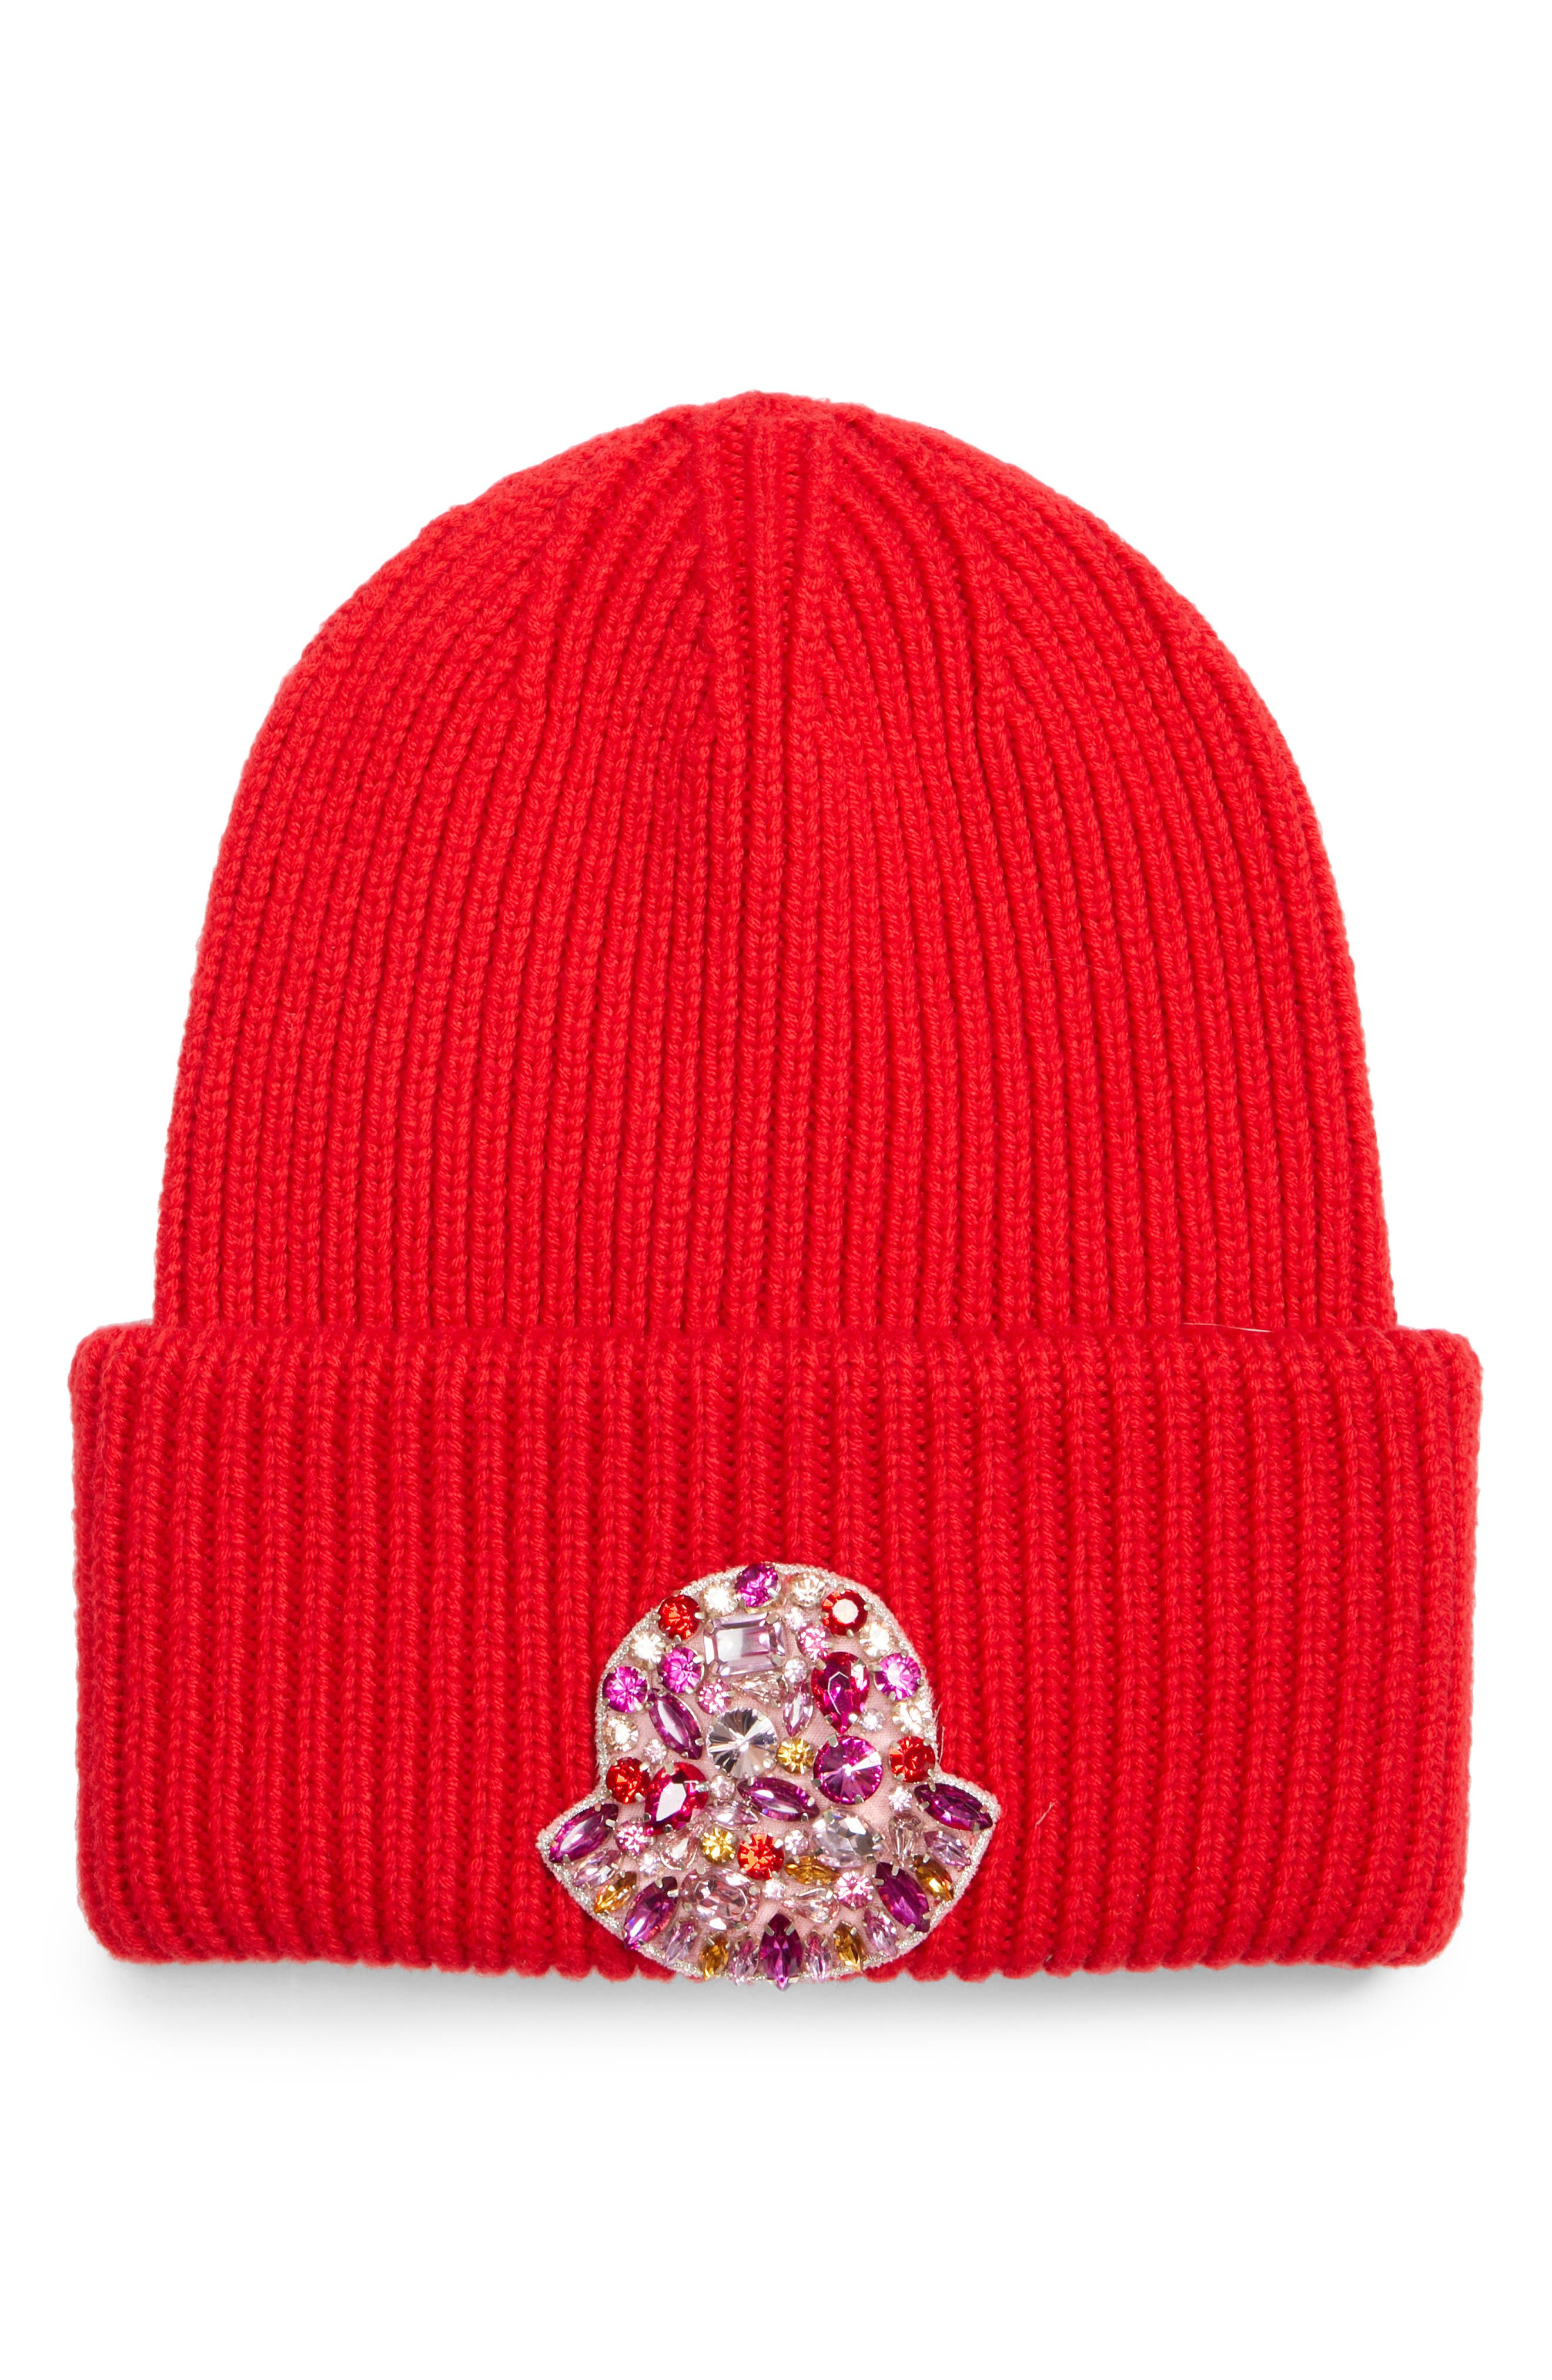 MONCLER Virgin Wool Beanie, Main, color, RED